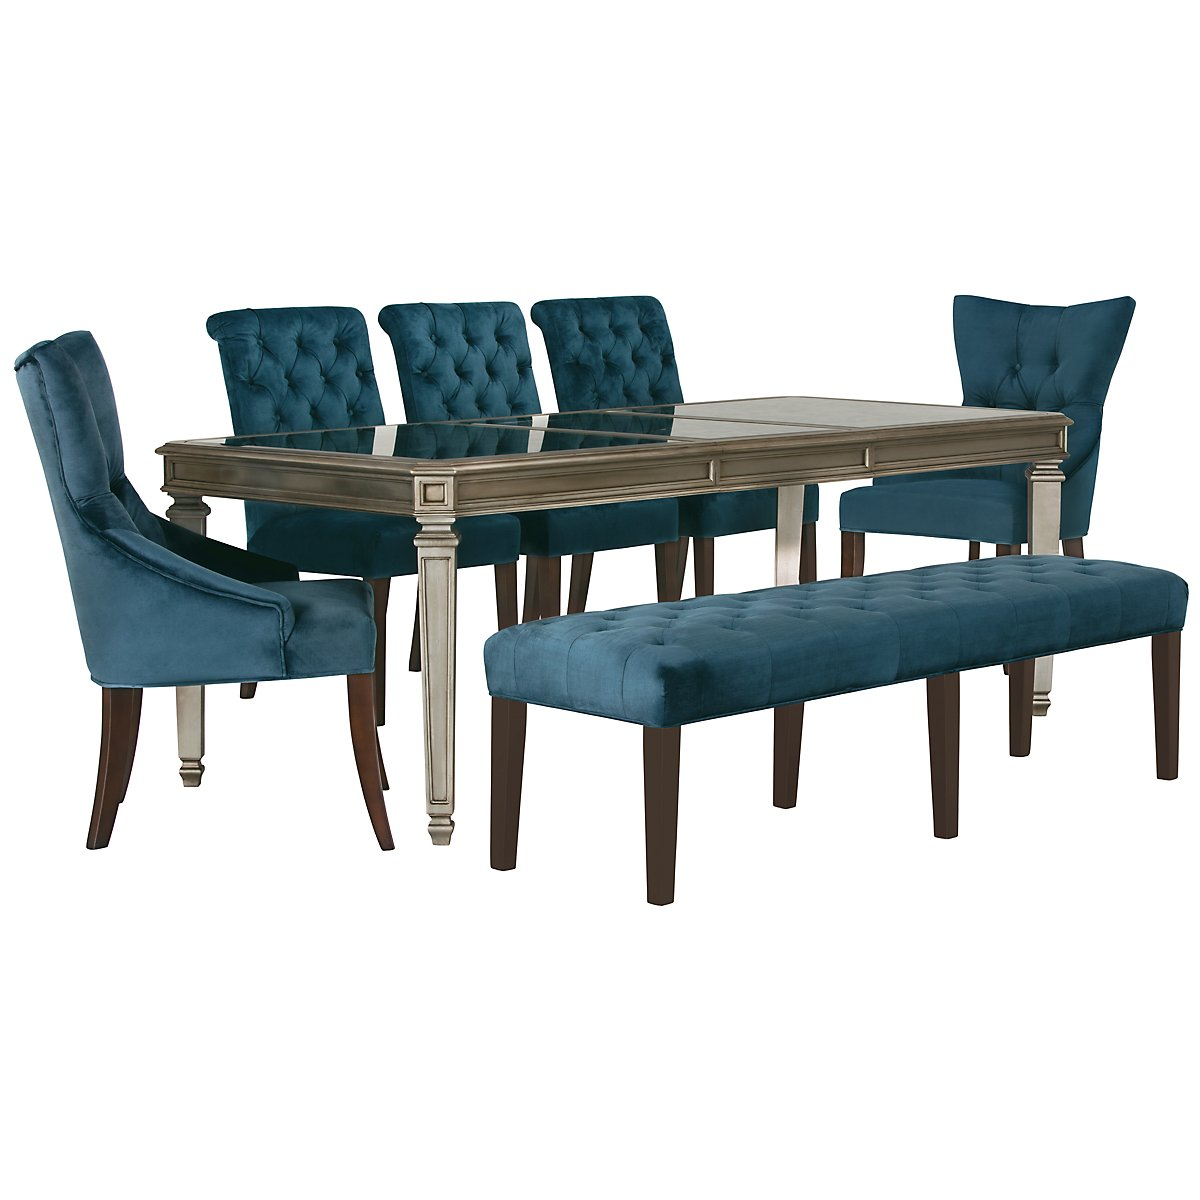 Sloane Dark Blue Upholstered Table, 4 Chairs & Bench